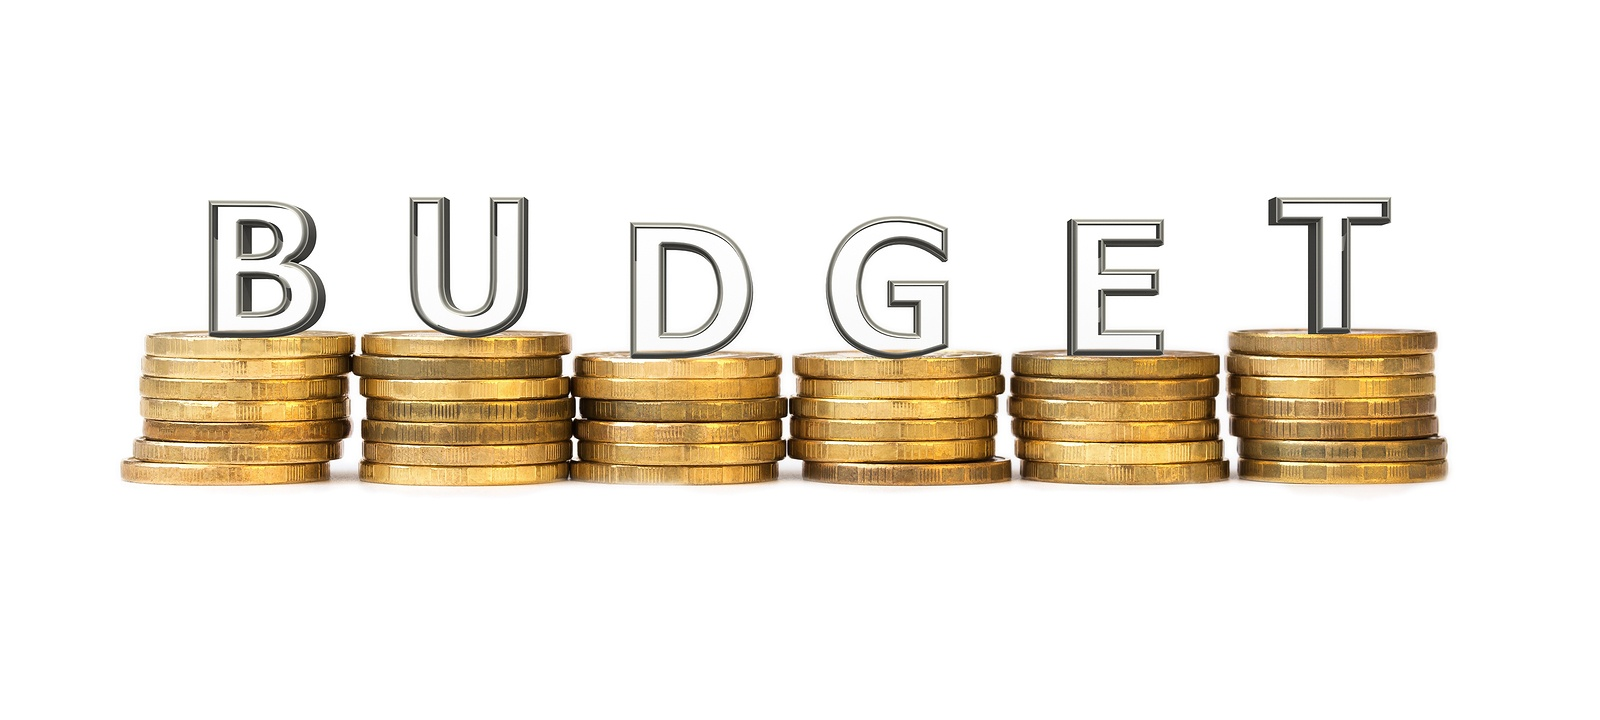 First, determine your budget for leasing office space